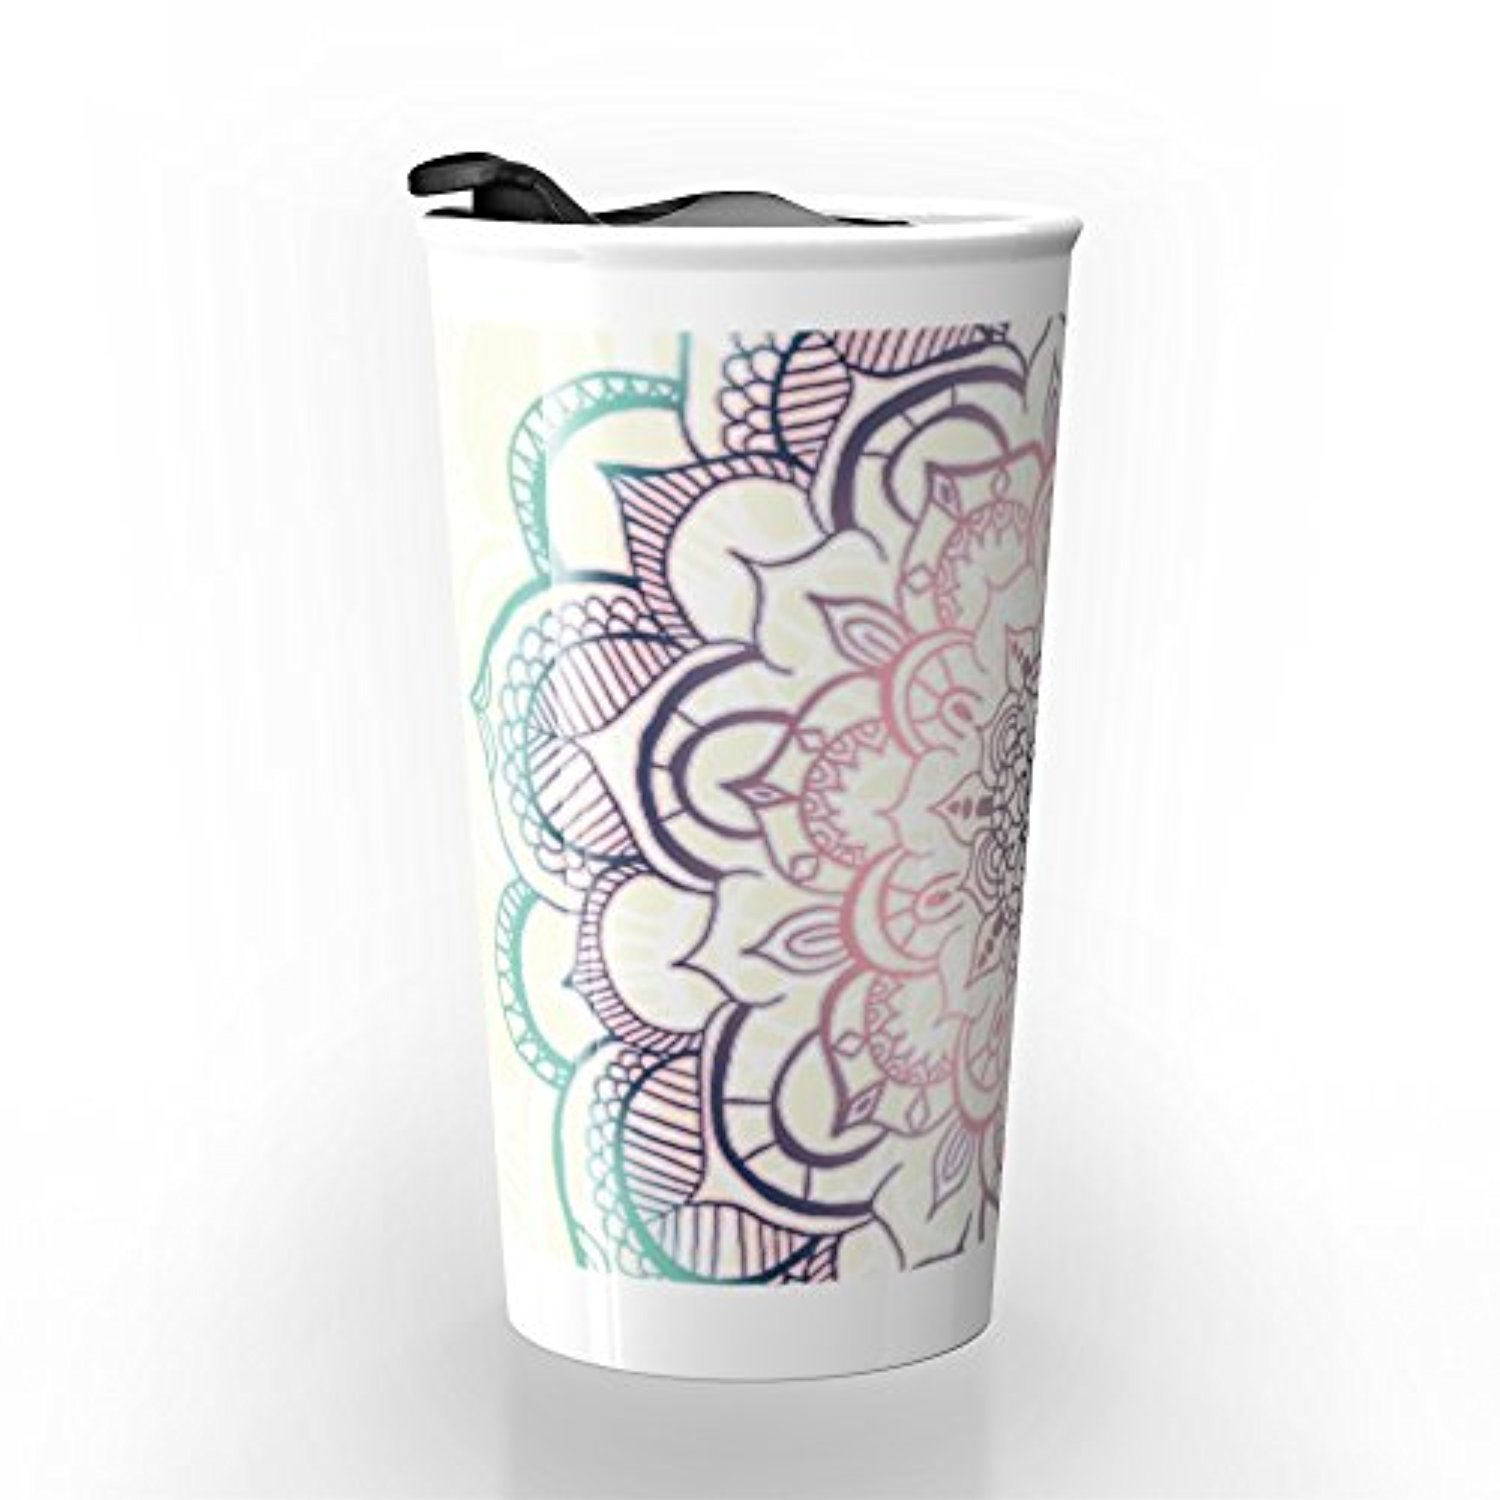 ◎送料込み◎ Society6 Mermaid Medallion Travel Mug 12 oz